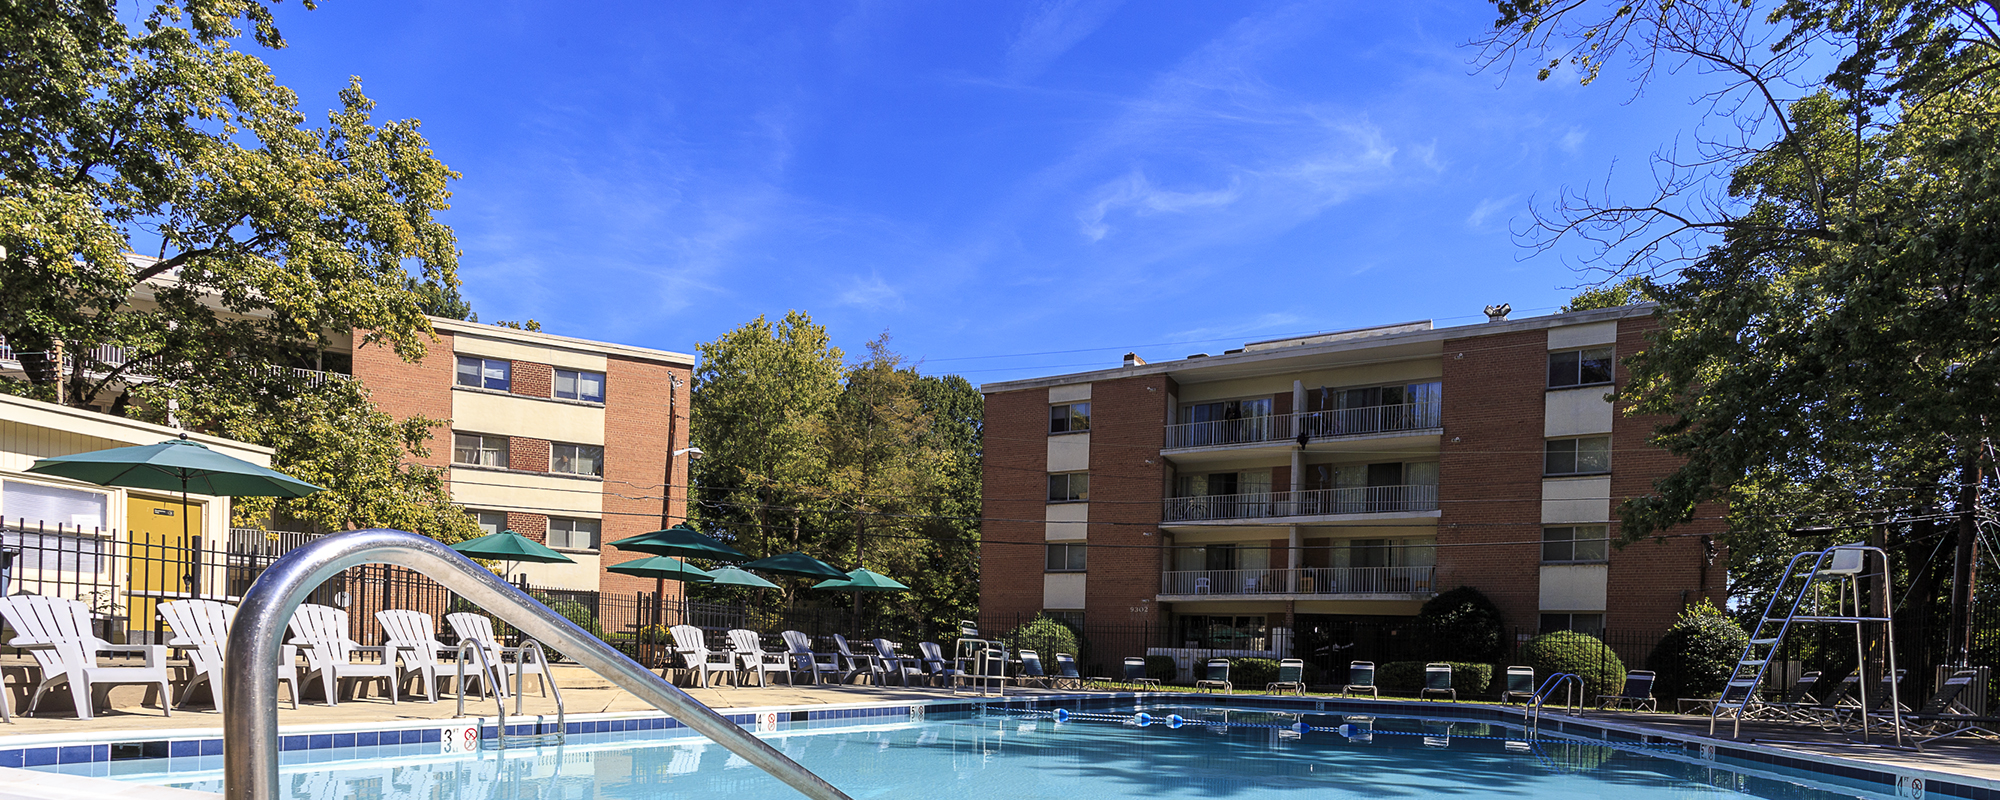 Forest Park Apartments Silver Spring